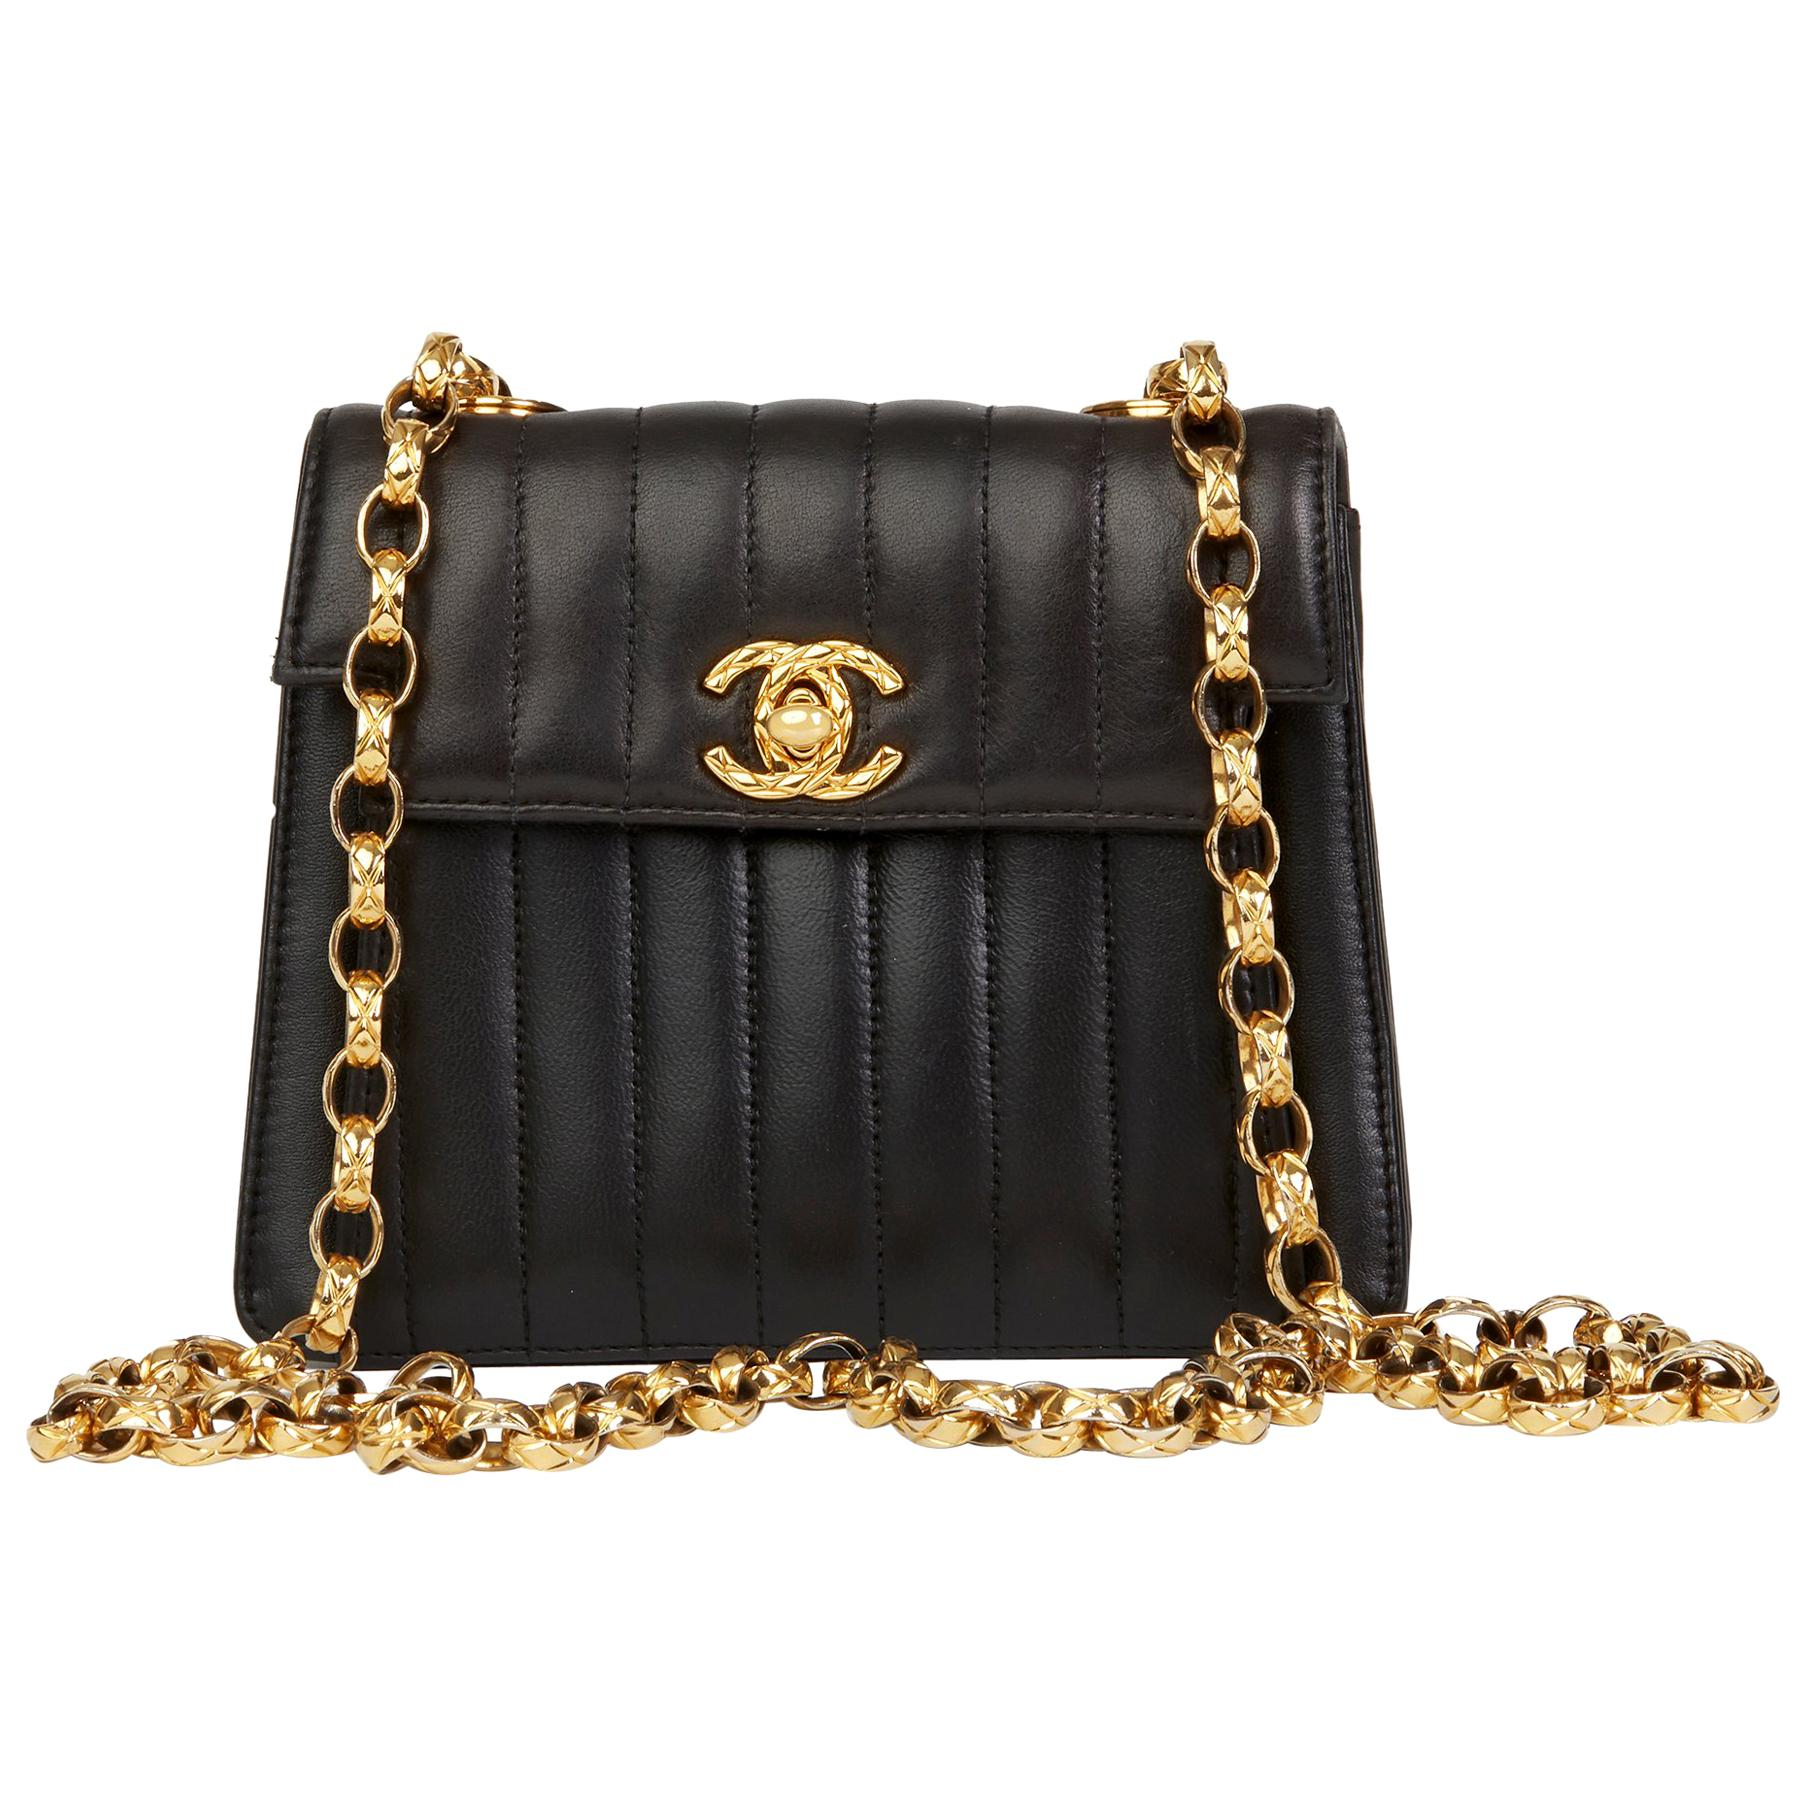 f4b8335ba8ad60 1991 Chanel Black Vertical Quilted Lambskin Vintage Mini Flap Bag at 1stdibs